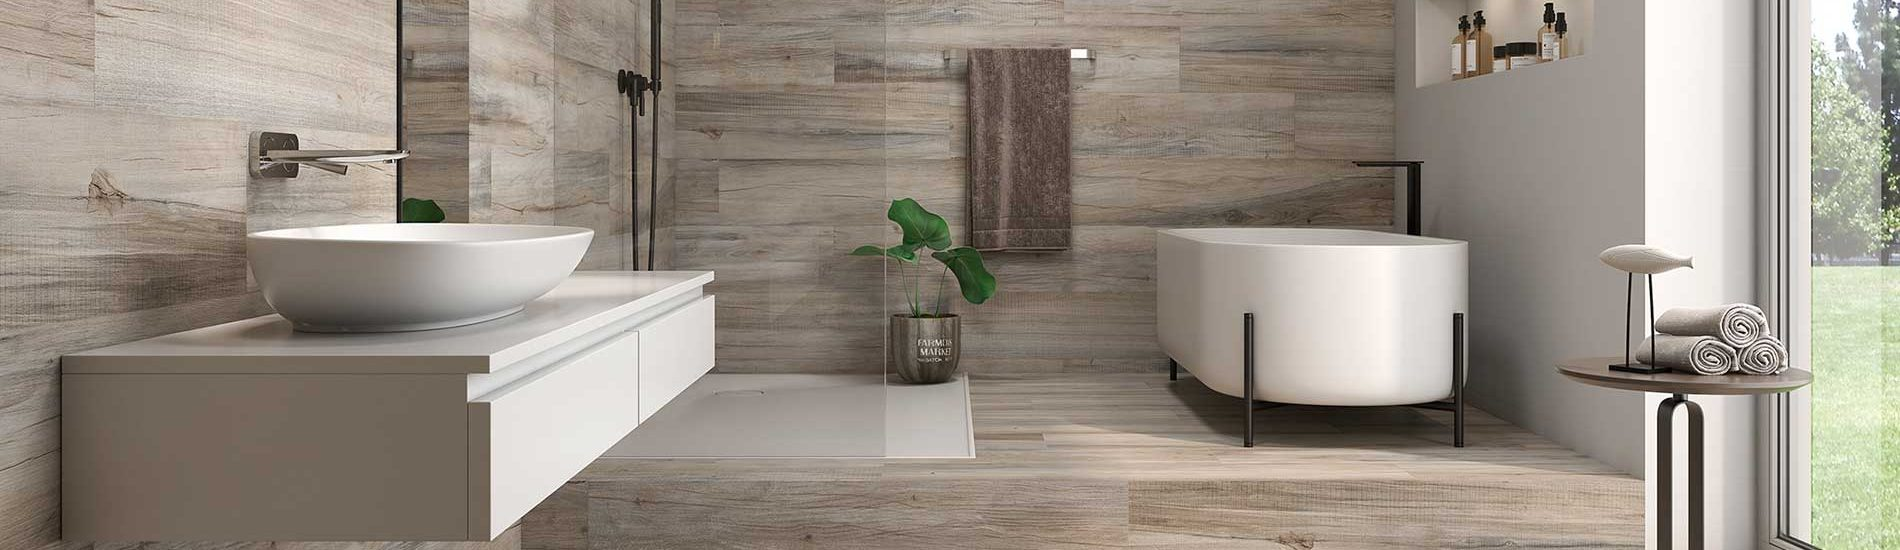 banner-jazz-wood-look-itt-ceramic-spanish-floor-wall-tile